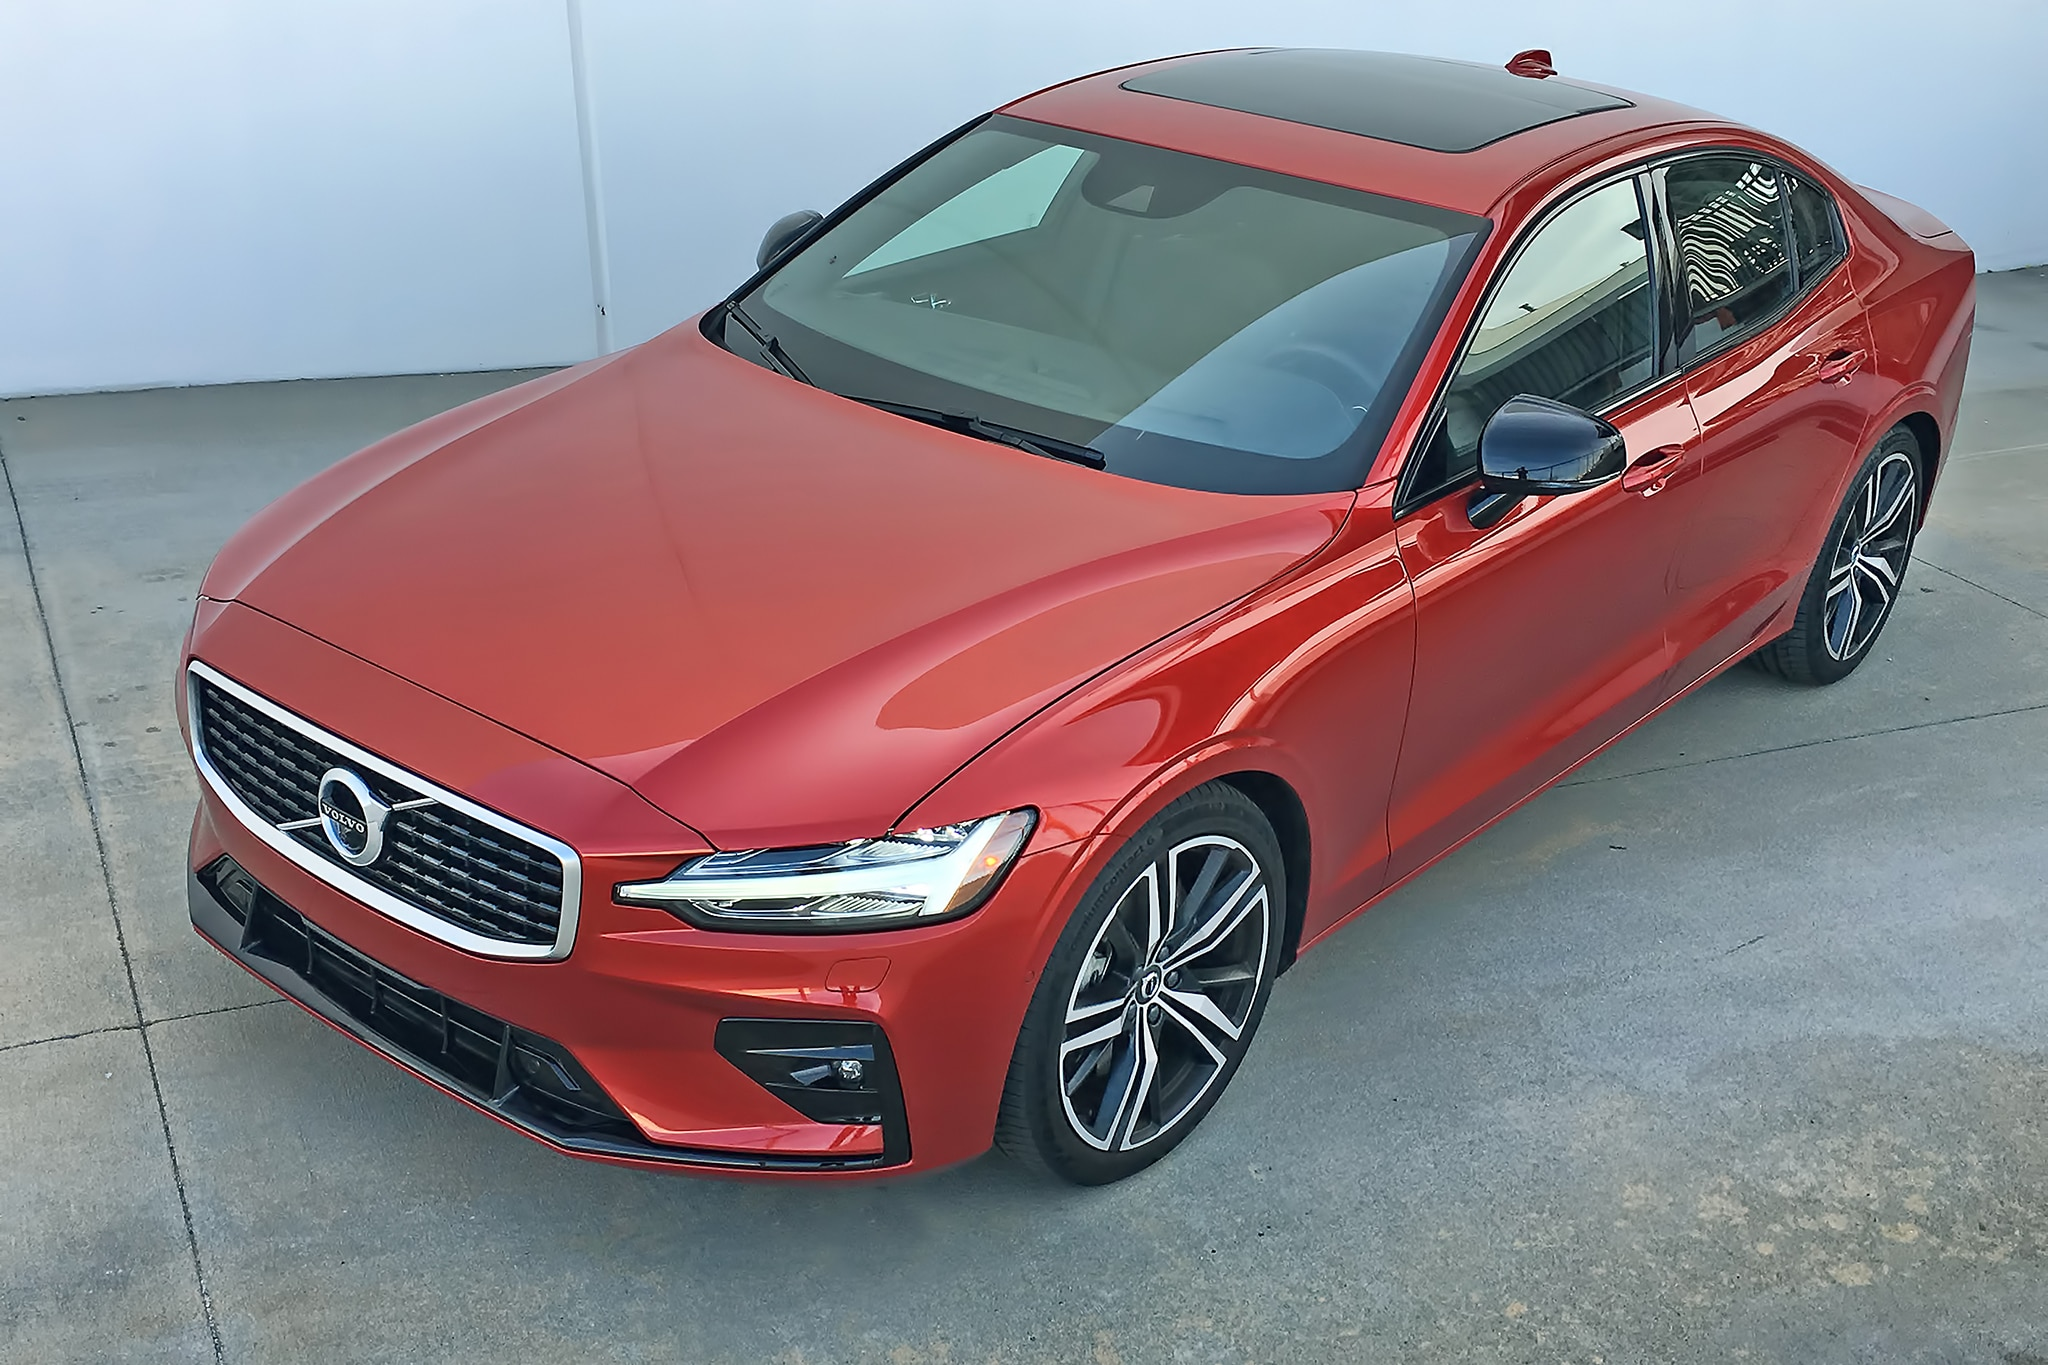 2019 Volvo S60 T6 AWD Review: Finesse, Fidelity, No Flash ...